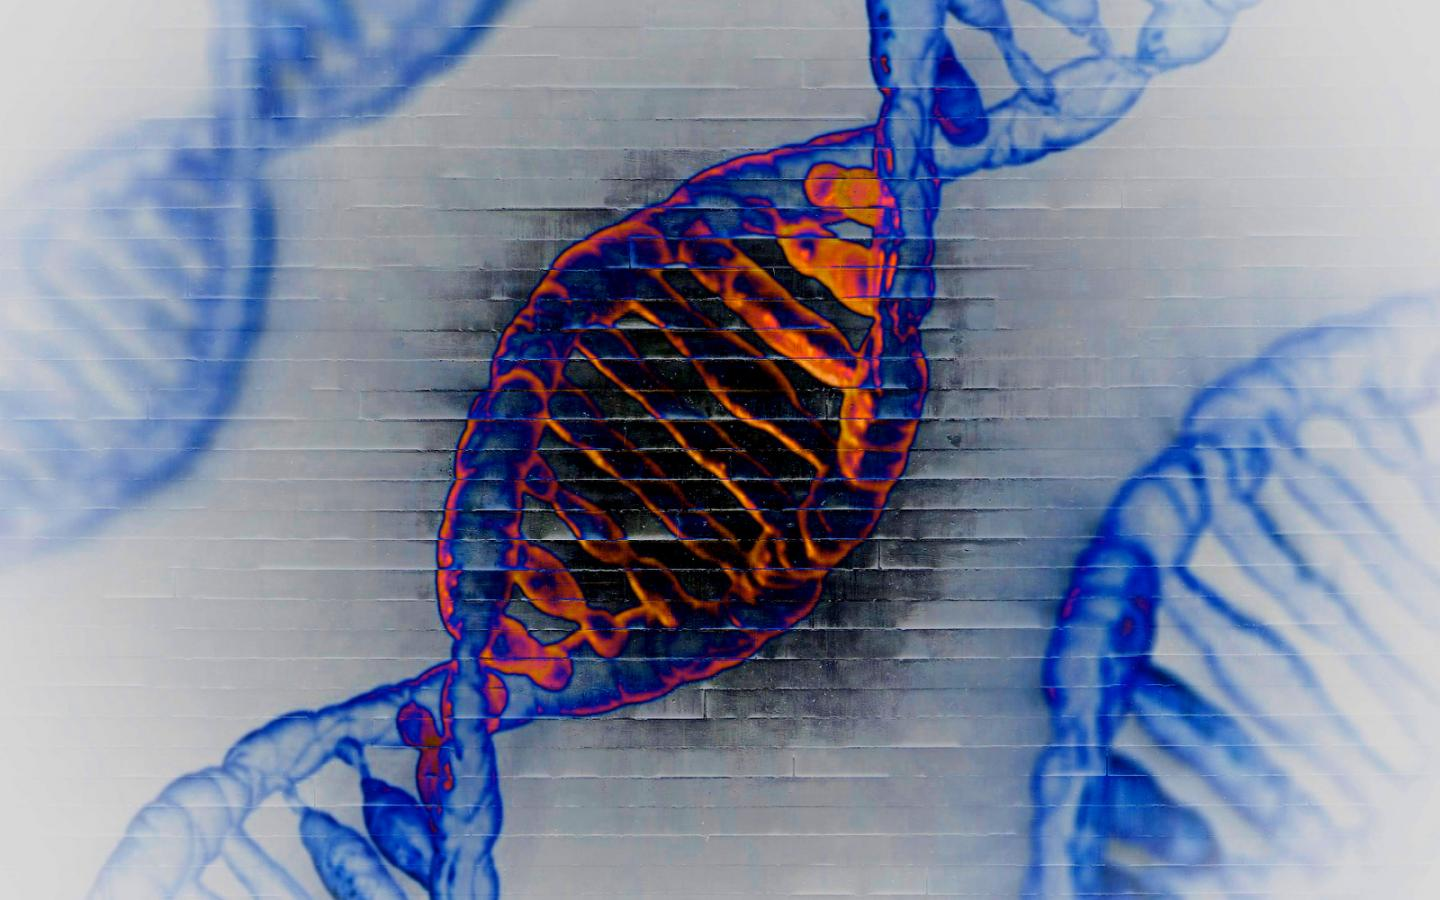 A Relatively Short List of Genes are Candidates for a Suite of Debilitating Diseases